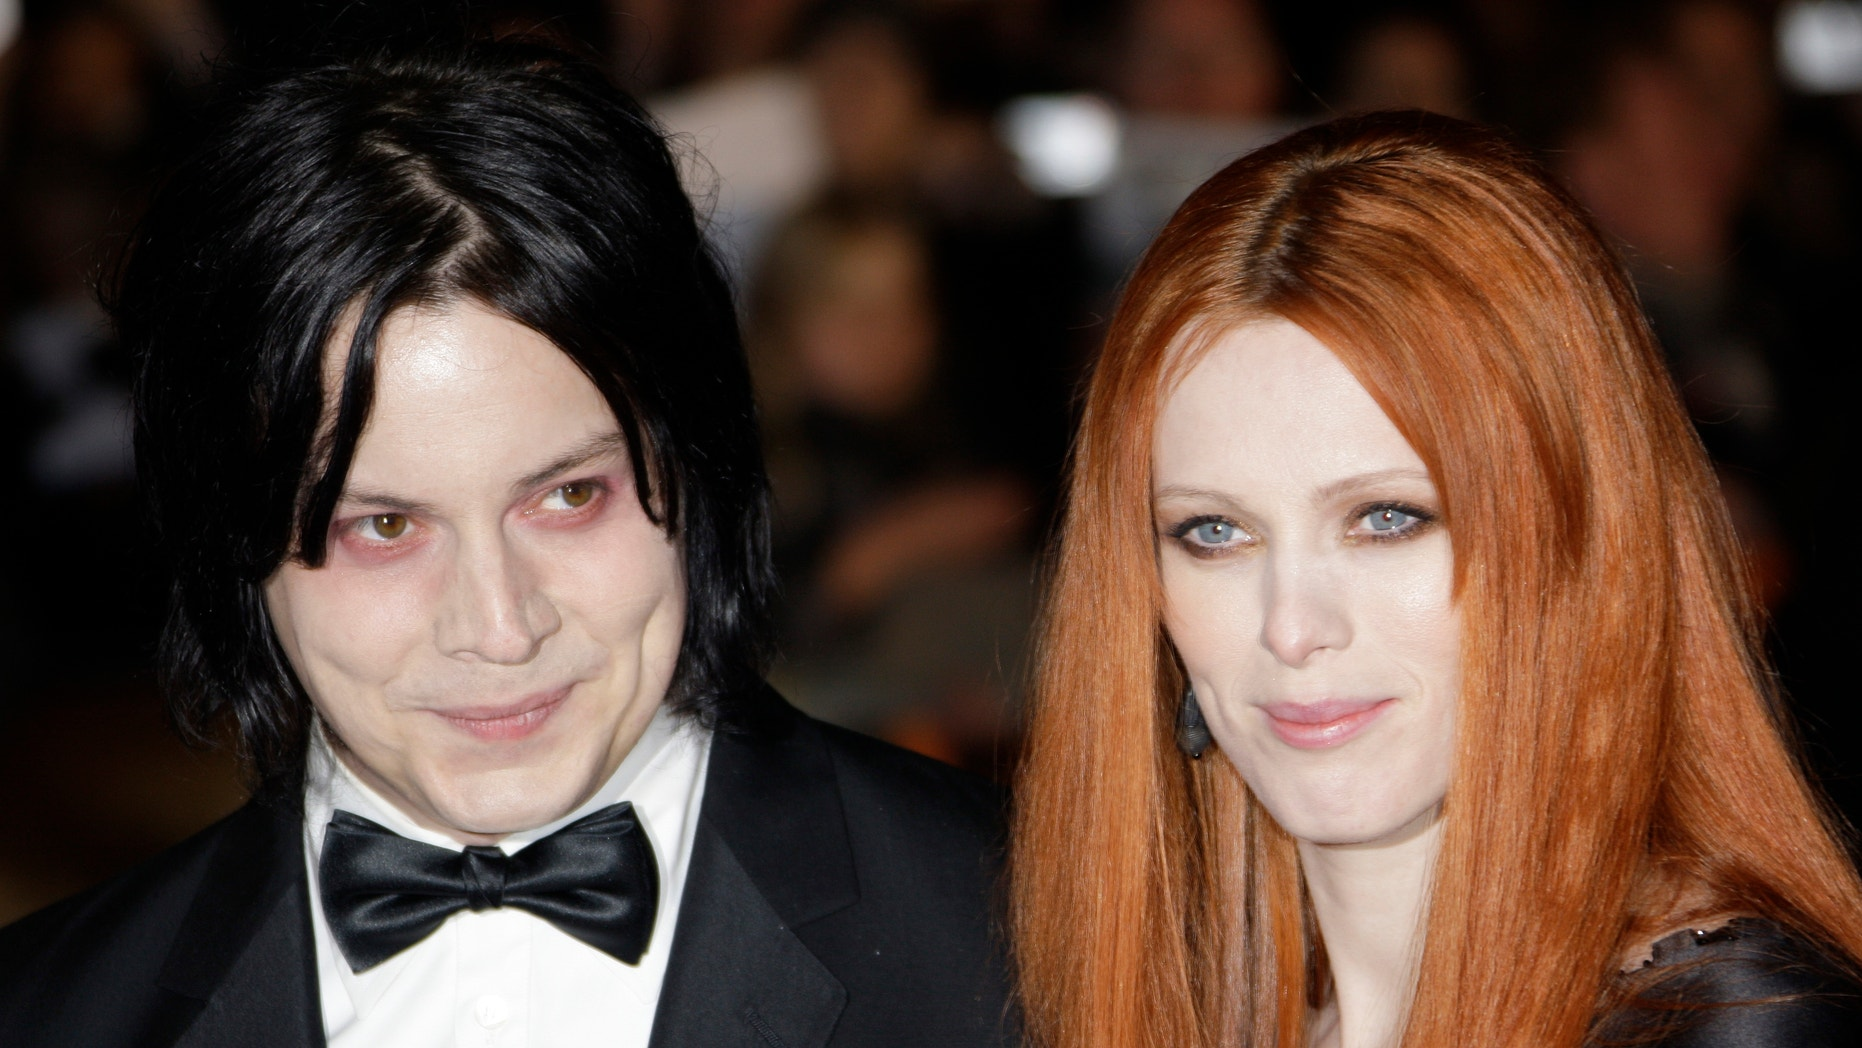 """In this Oct. 29, 2008 file photo, musician Jack White, left, and Karen Elson arrive on the red carpet for the Royal World Premiere of the 22nd James Bond film, """"Quantum of Solace"""" in London."""